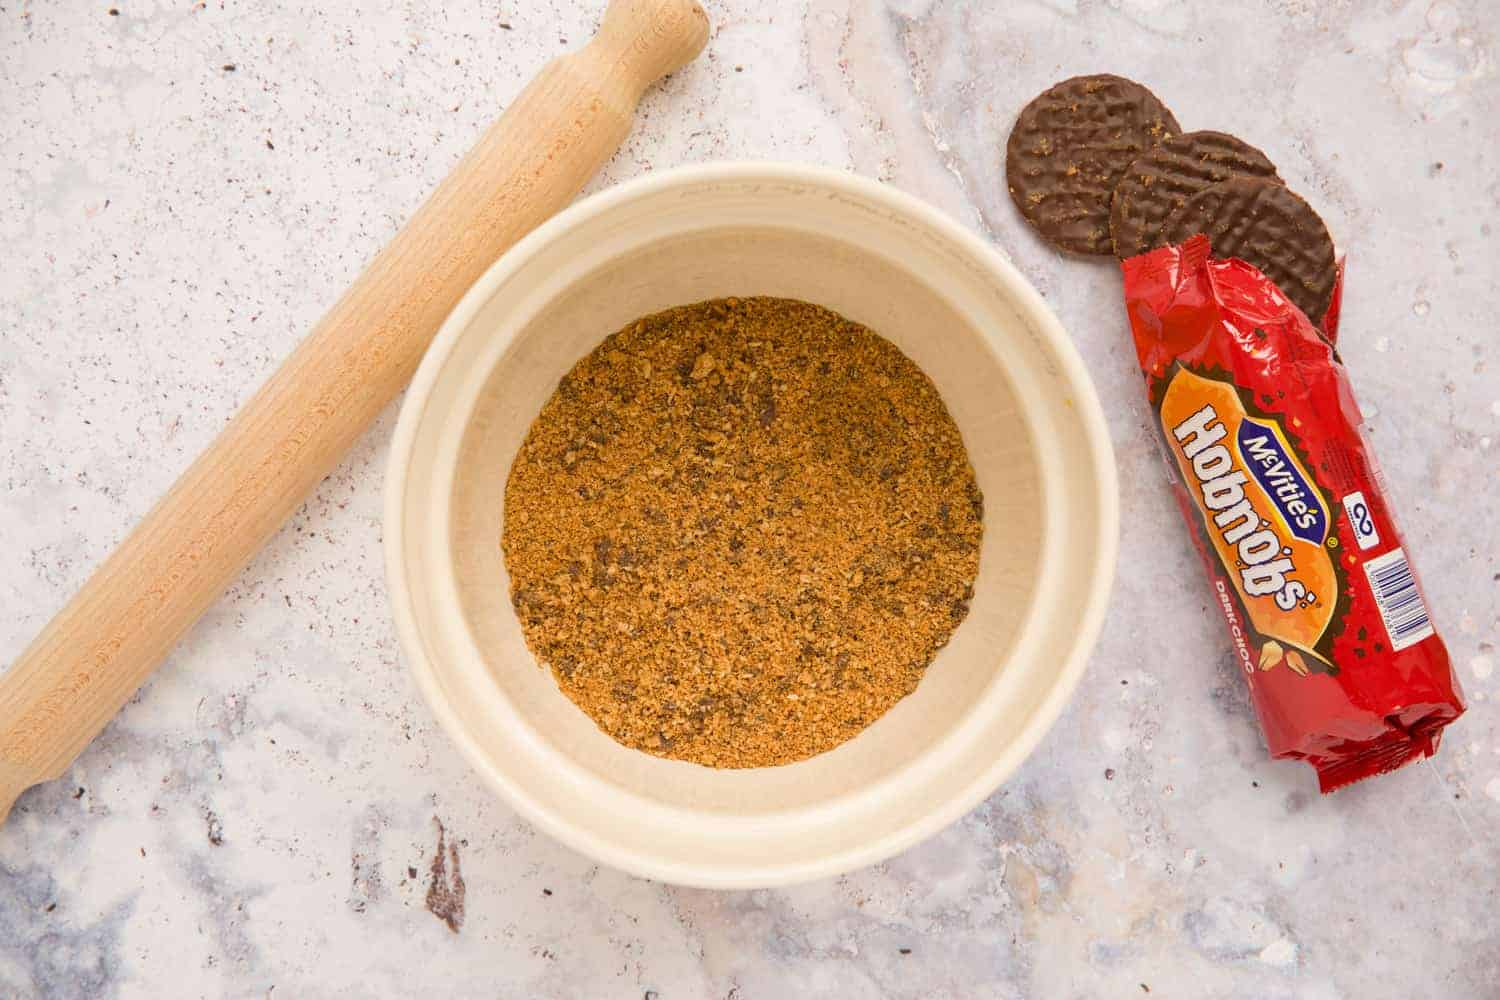 Overhead shot of a mixing bowl filled with crushed Hobnob biscuits. There is a rolling pin to the left of the bowl and a packet of chocolate Hobnob biscuits to the right of the bowl.